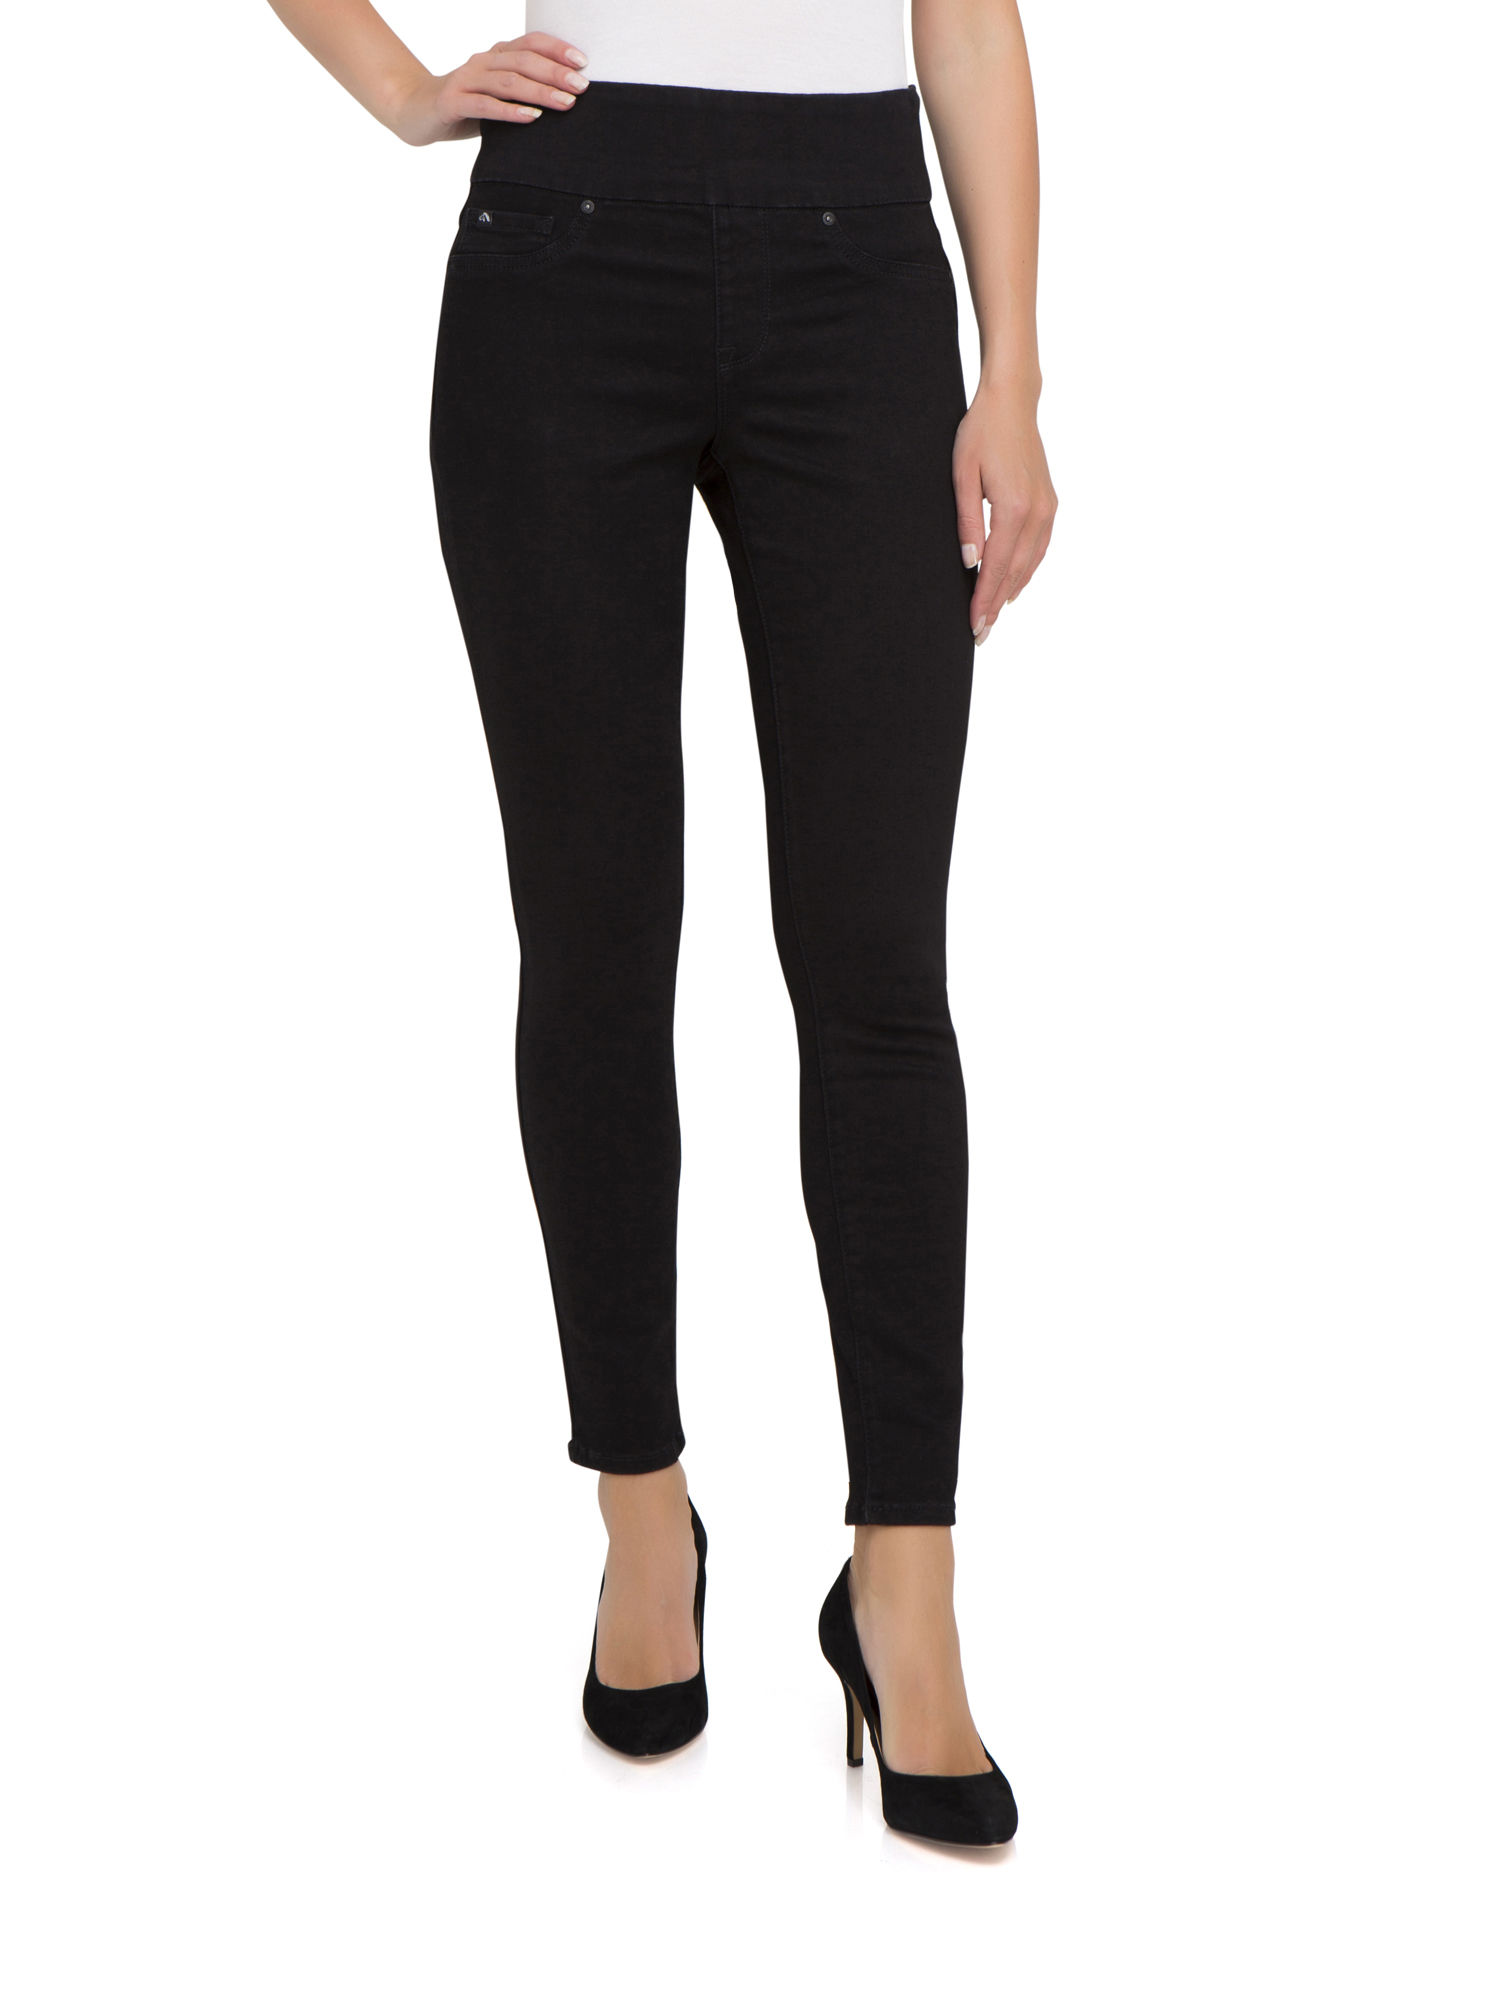 Jordache Women's Shaping Wide Waistband Pull-on Leggings